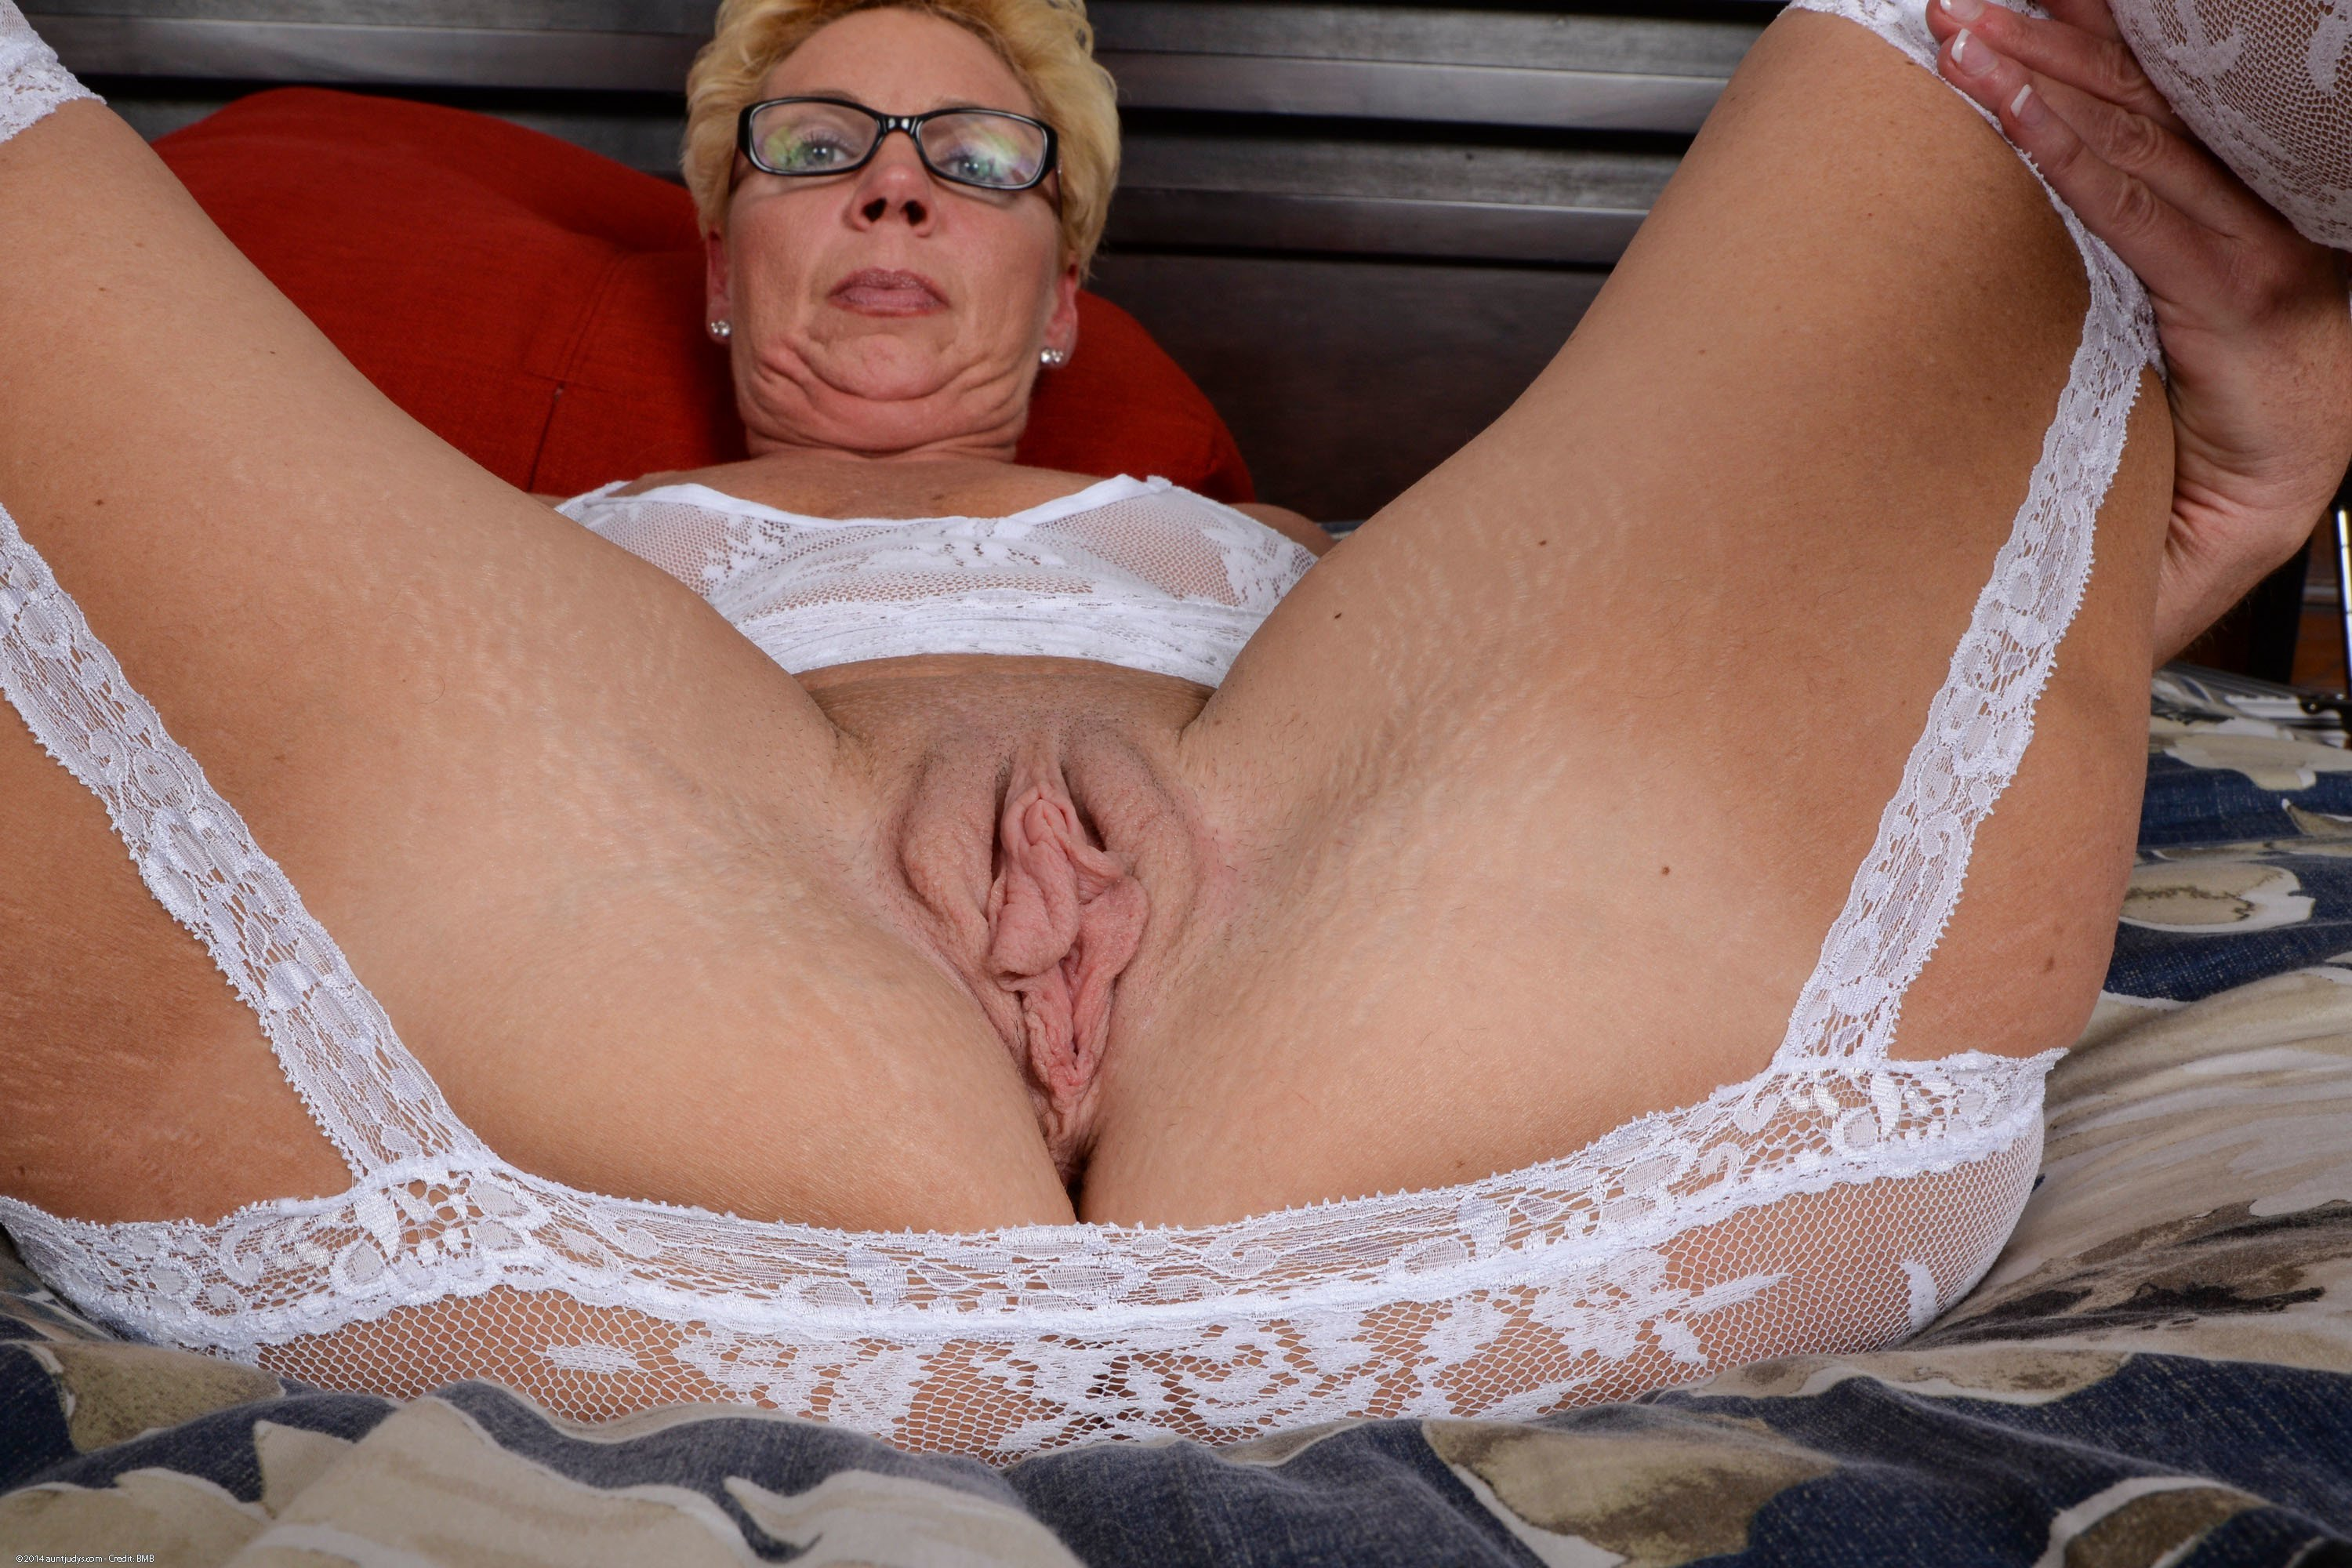 Hot Gilf Suzy Hott Vibes Her Big Wet Pussy To A Clit Hopping Pulsing Orgasm Up Close